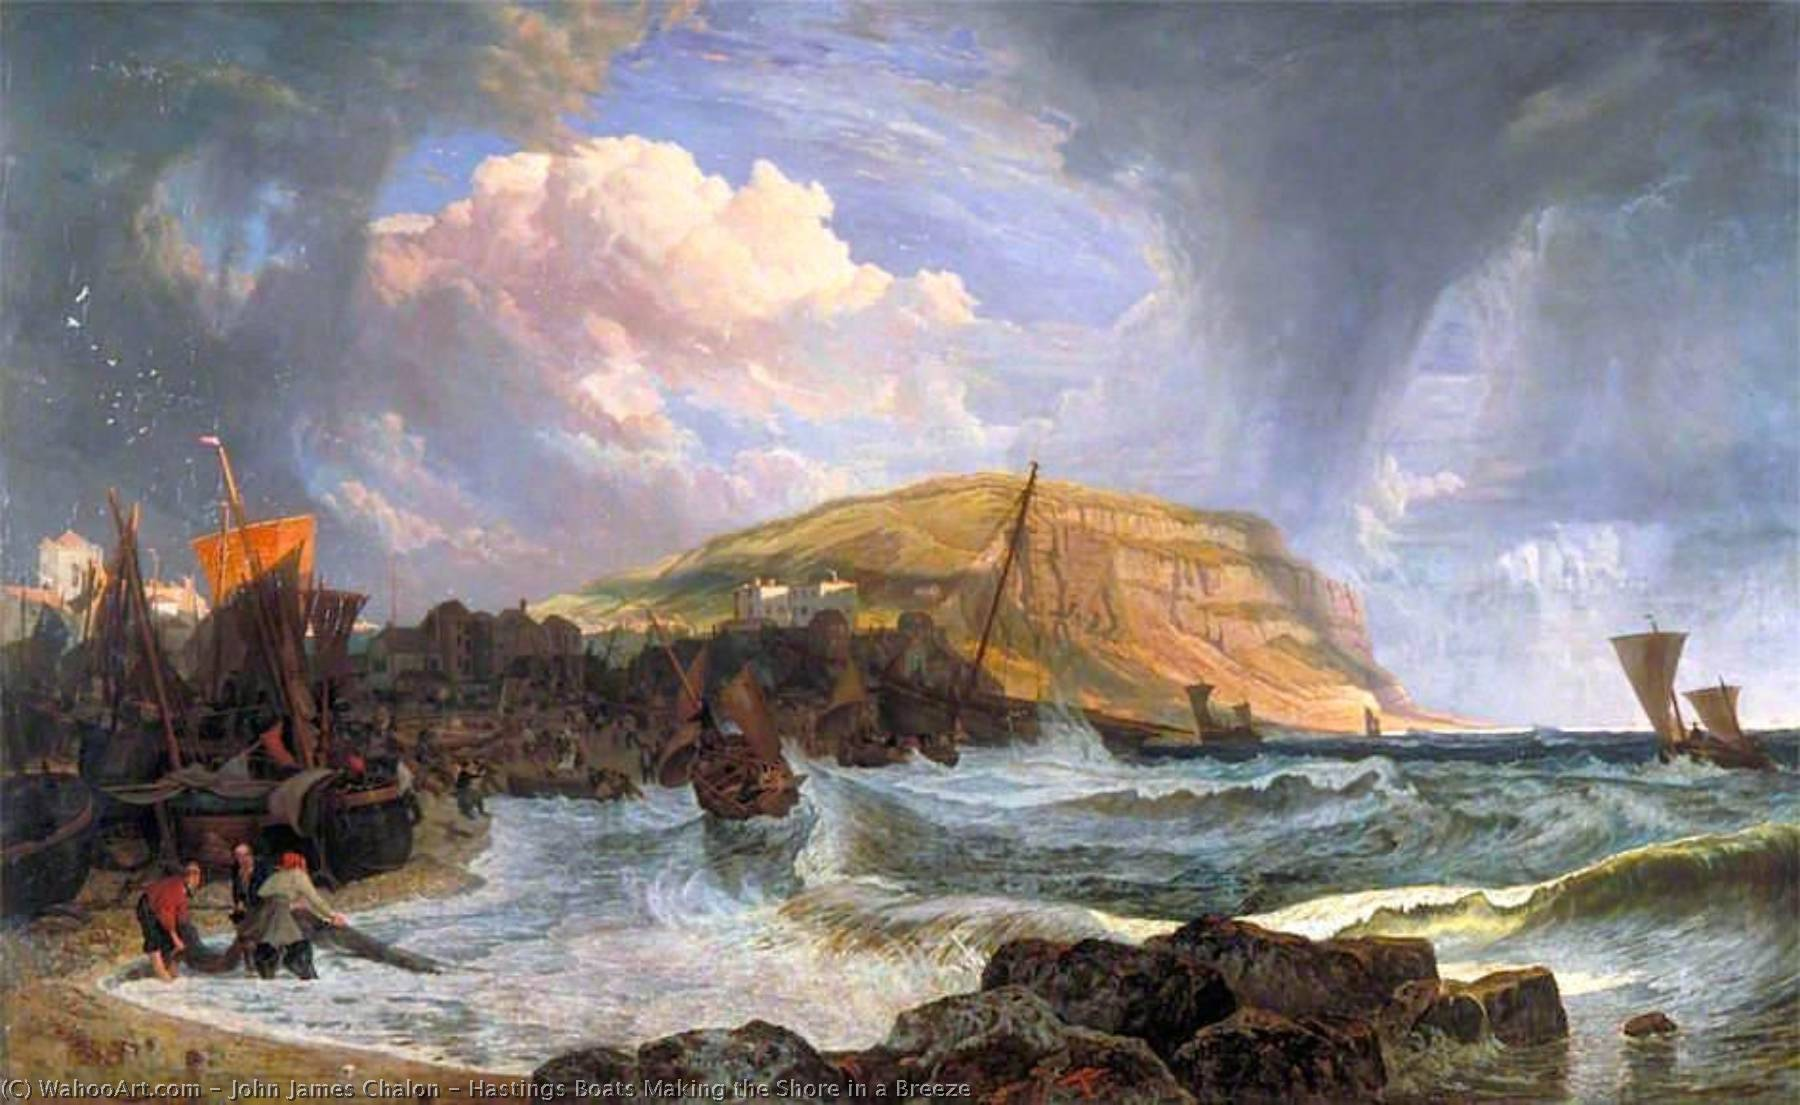 Hastings Barche Fare la riva in un Brezza, olio su tela di John James Chalon (1778-1854)